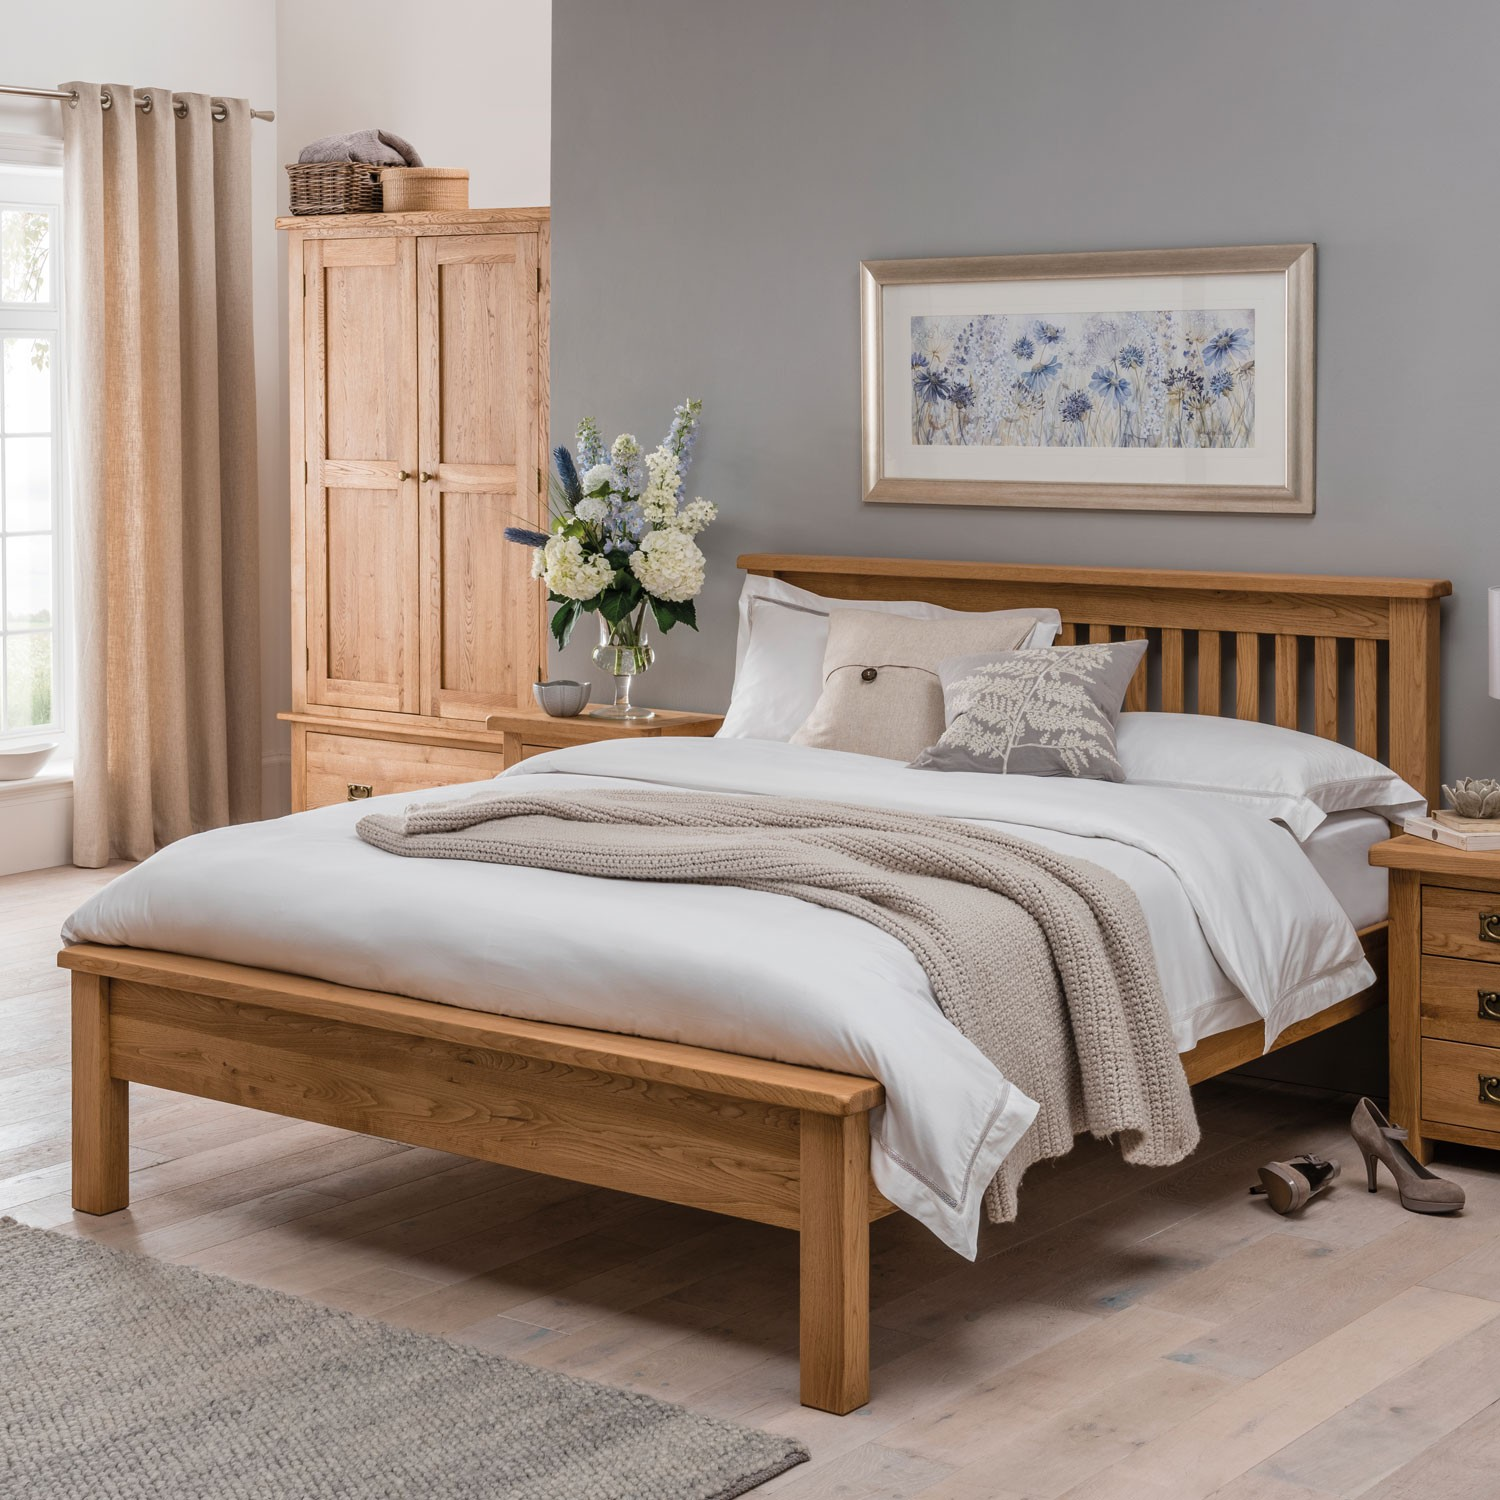 Seville Low Foot End Bed Frame Double